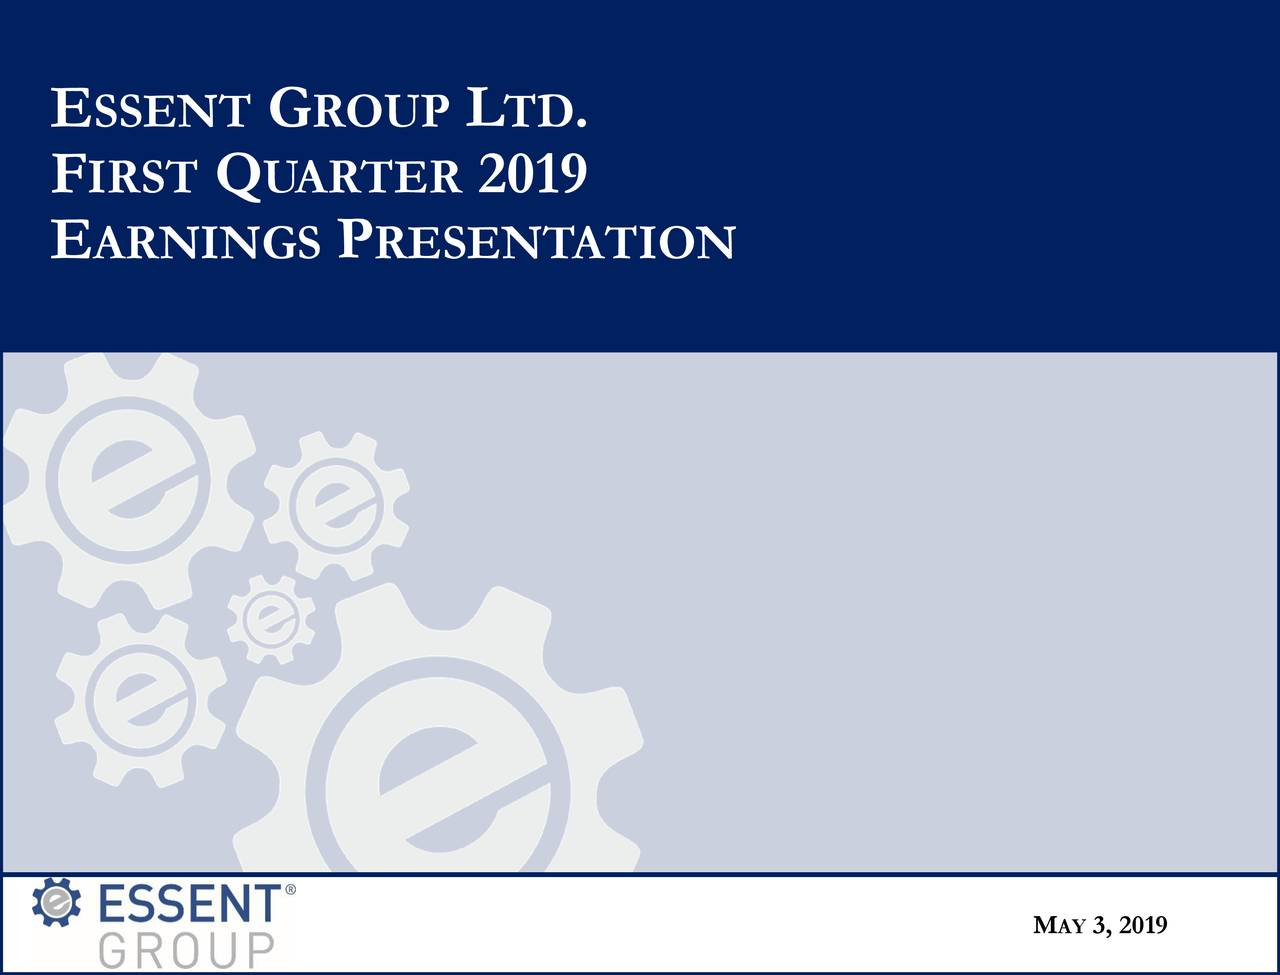 FIRSTQ UARTER 2019 EARNINGS PRESENTATION MA3, 2019